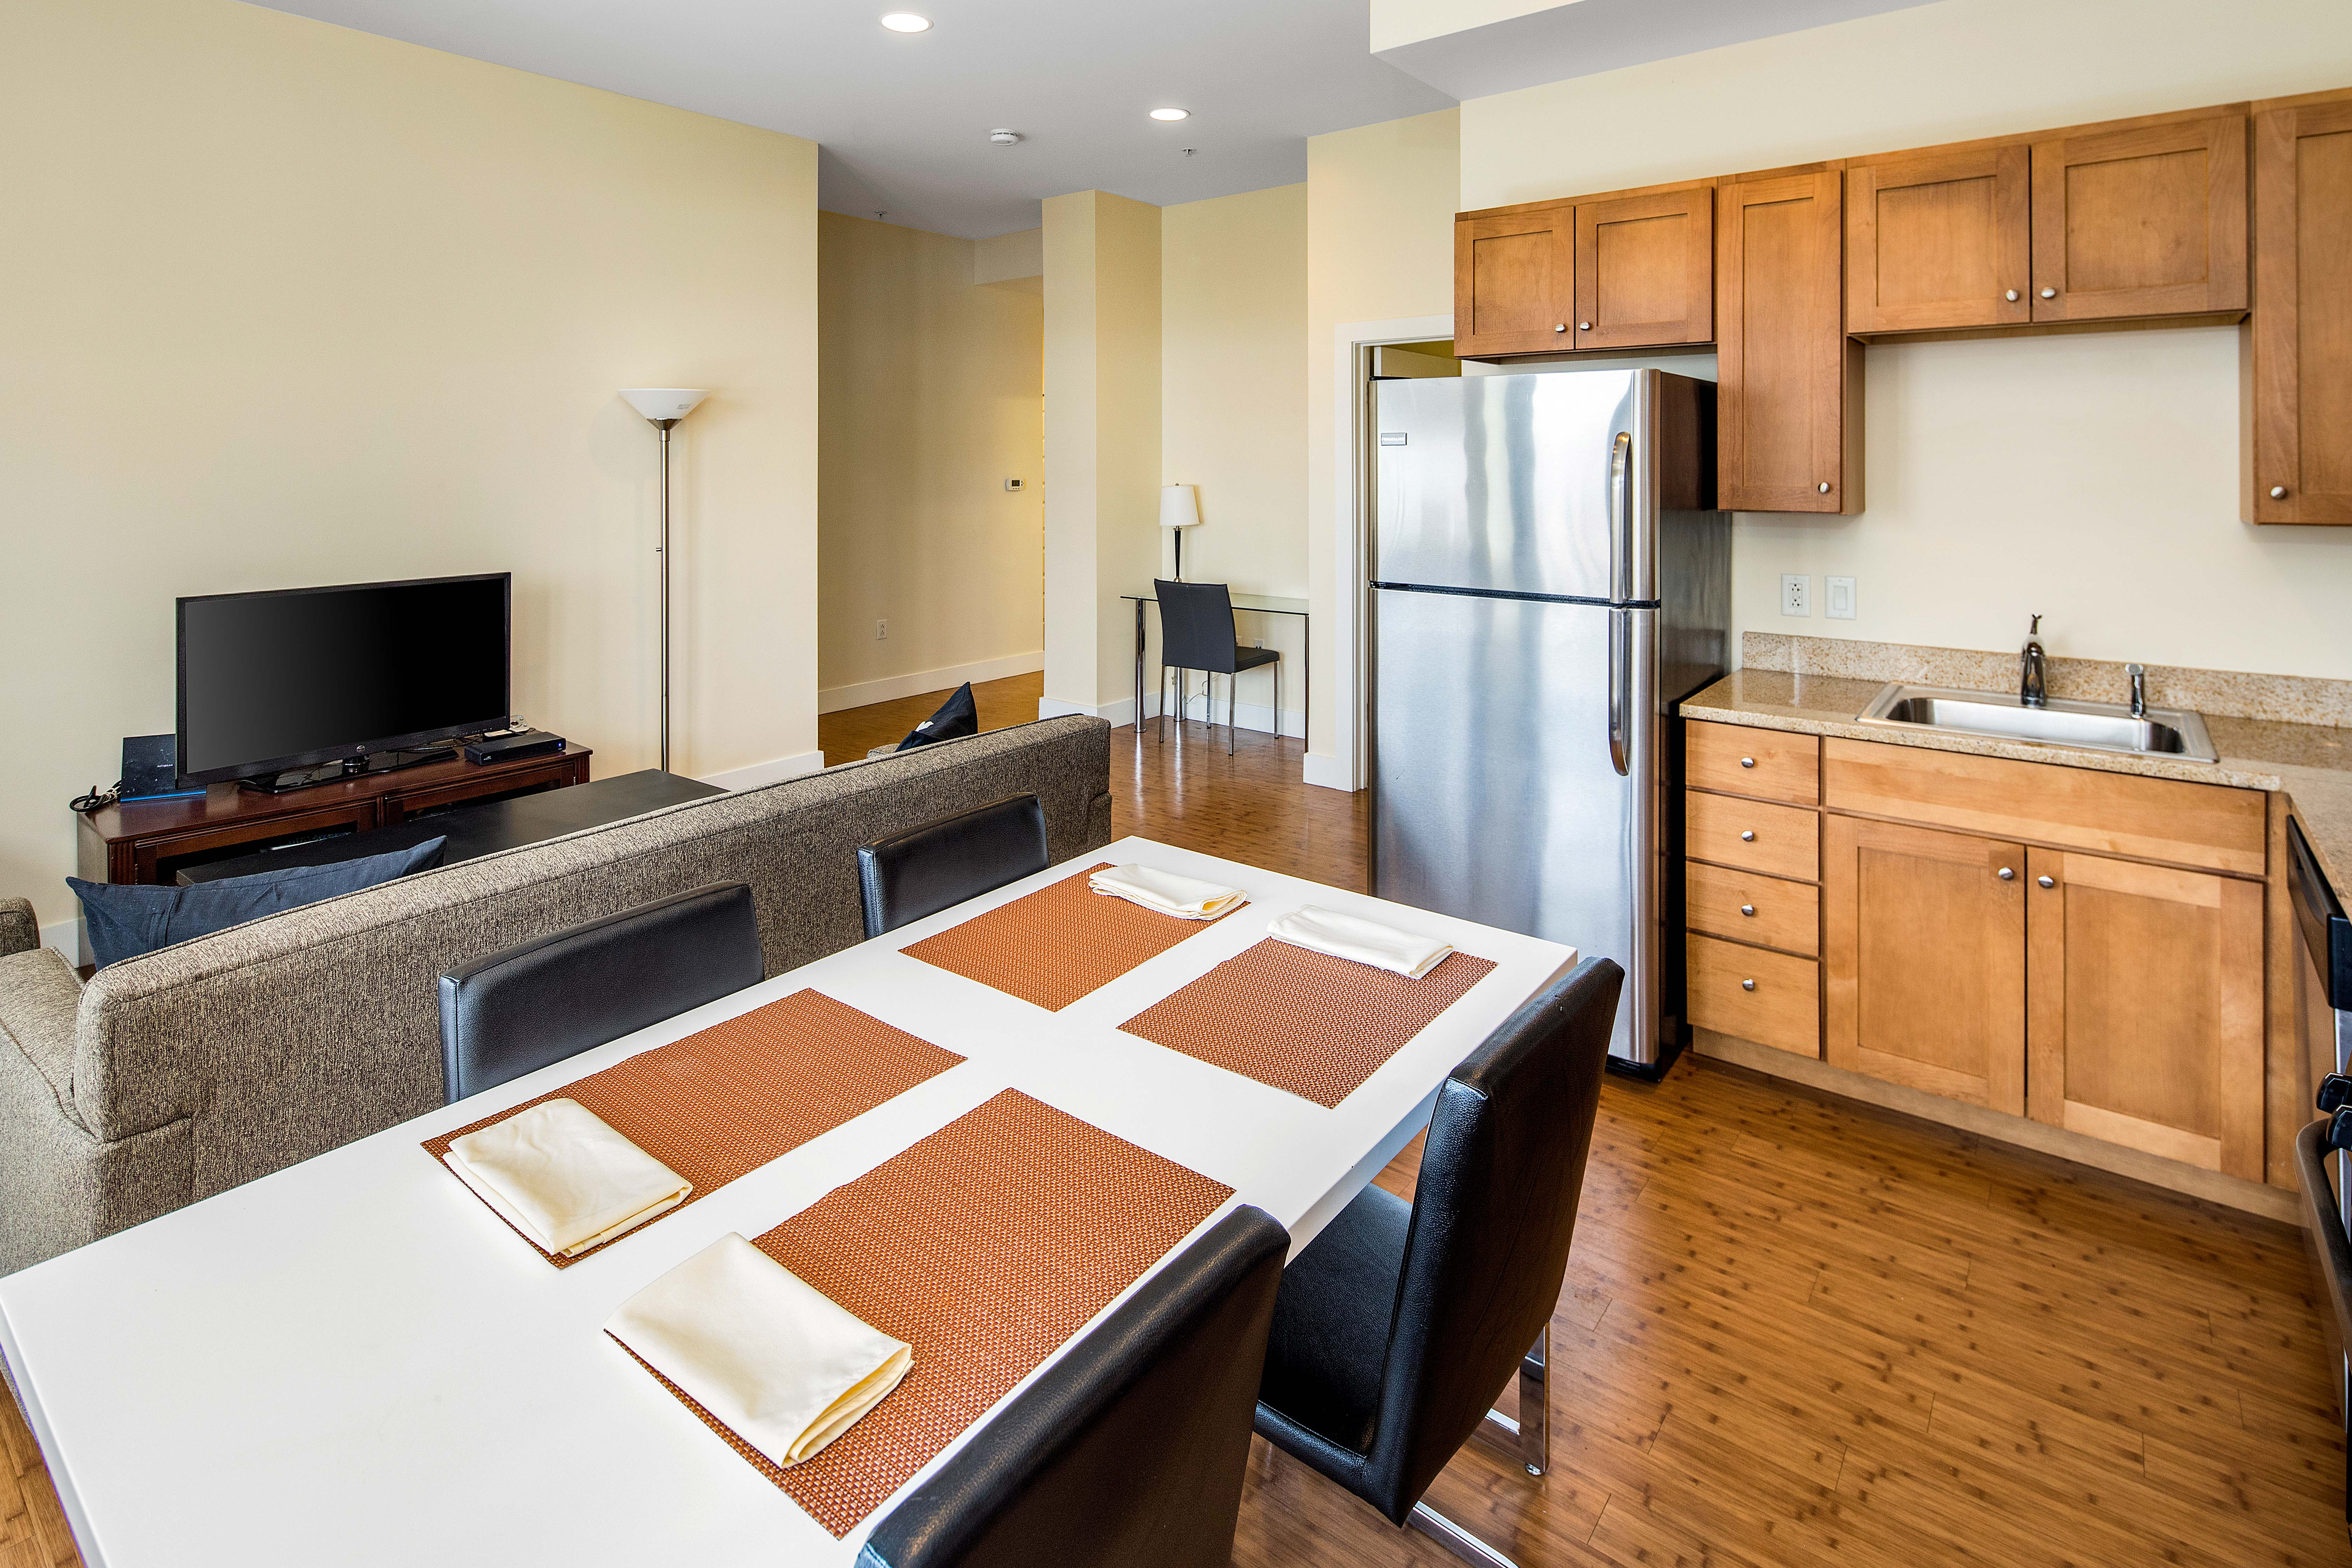 image 5 furnished 2 bedroom Apartment for rent in Downtown St Louis, St Louis Area